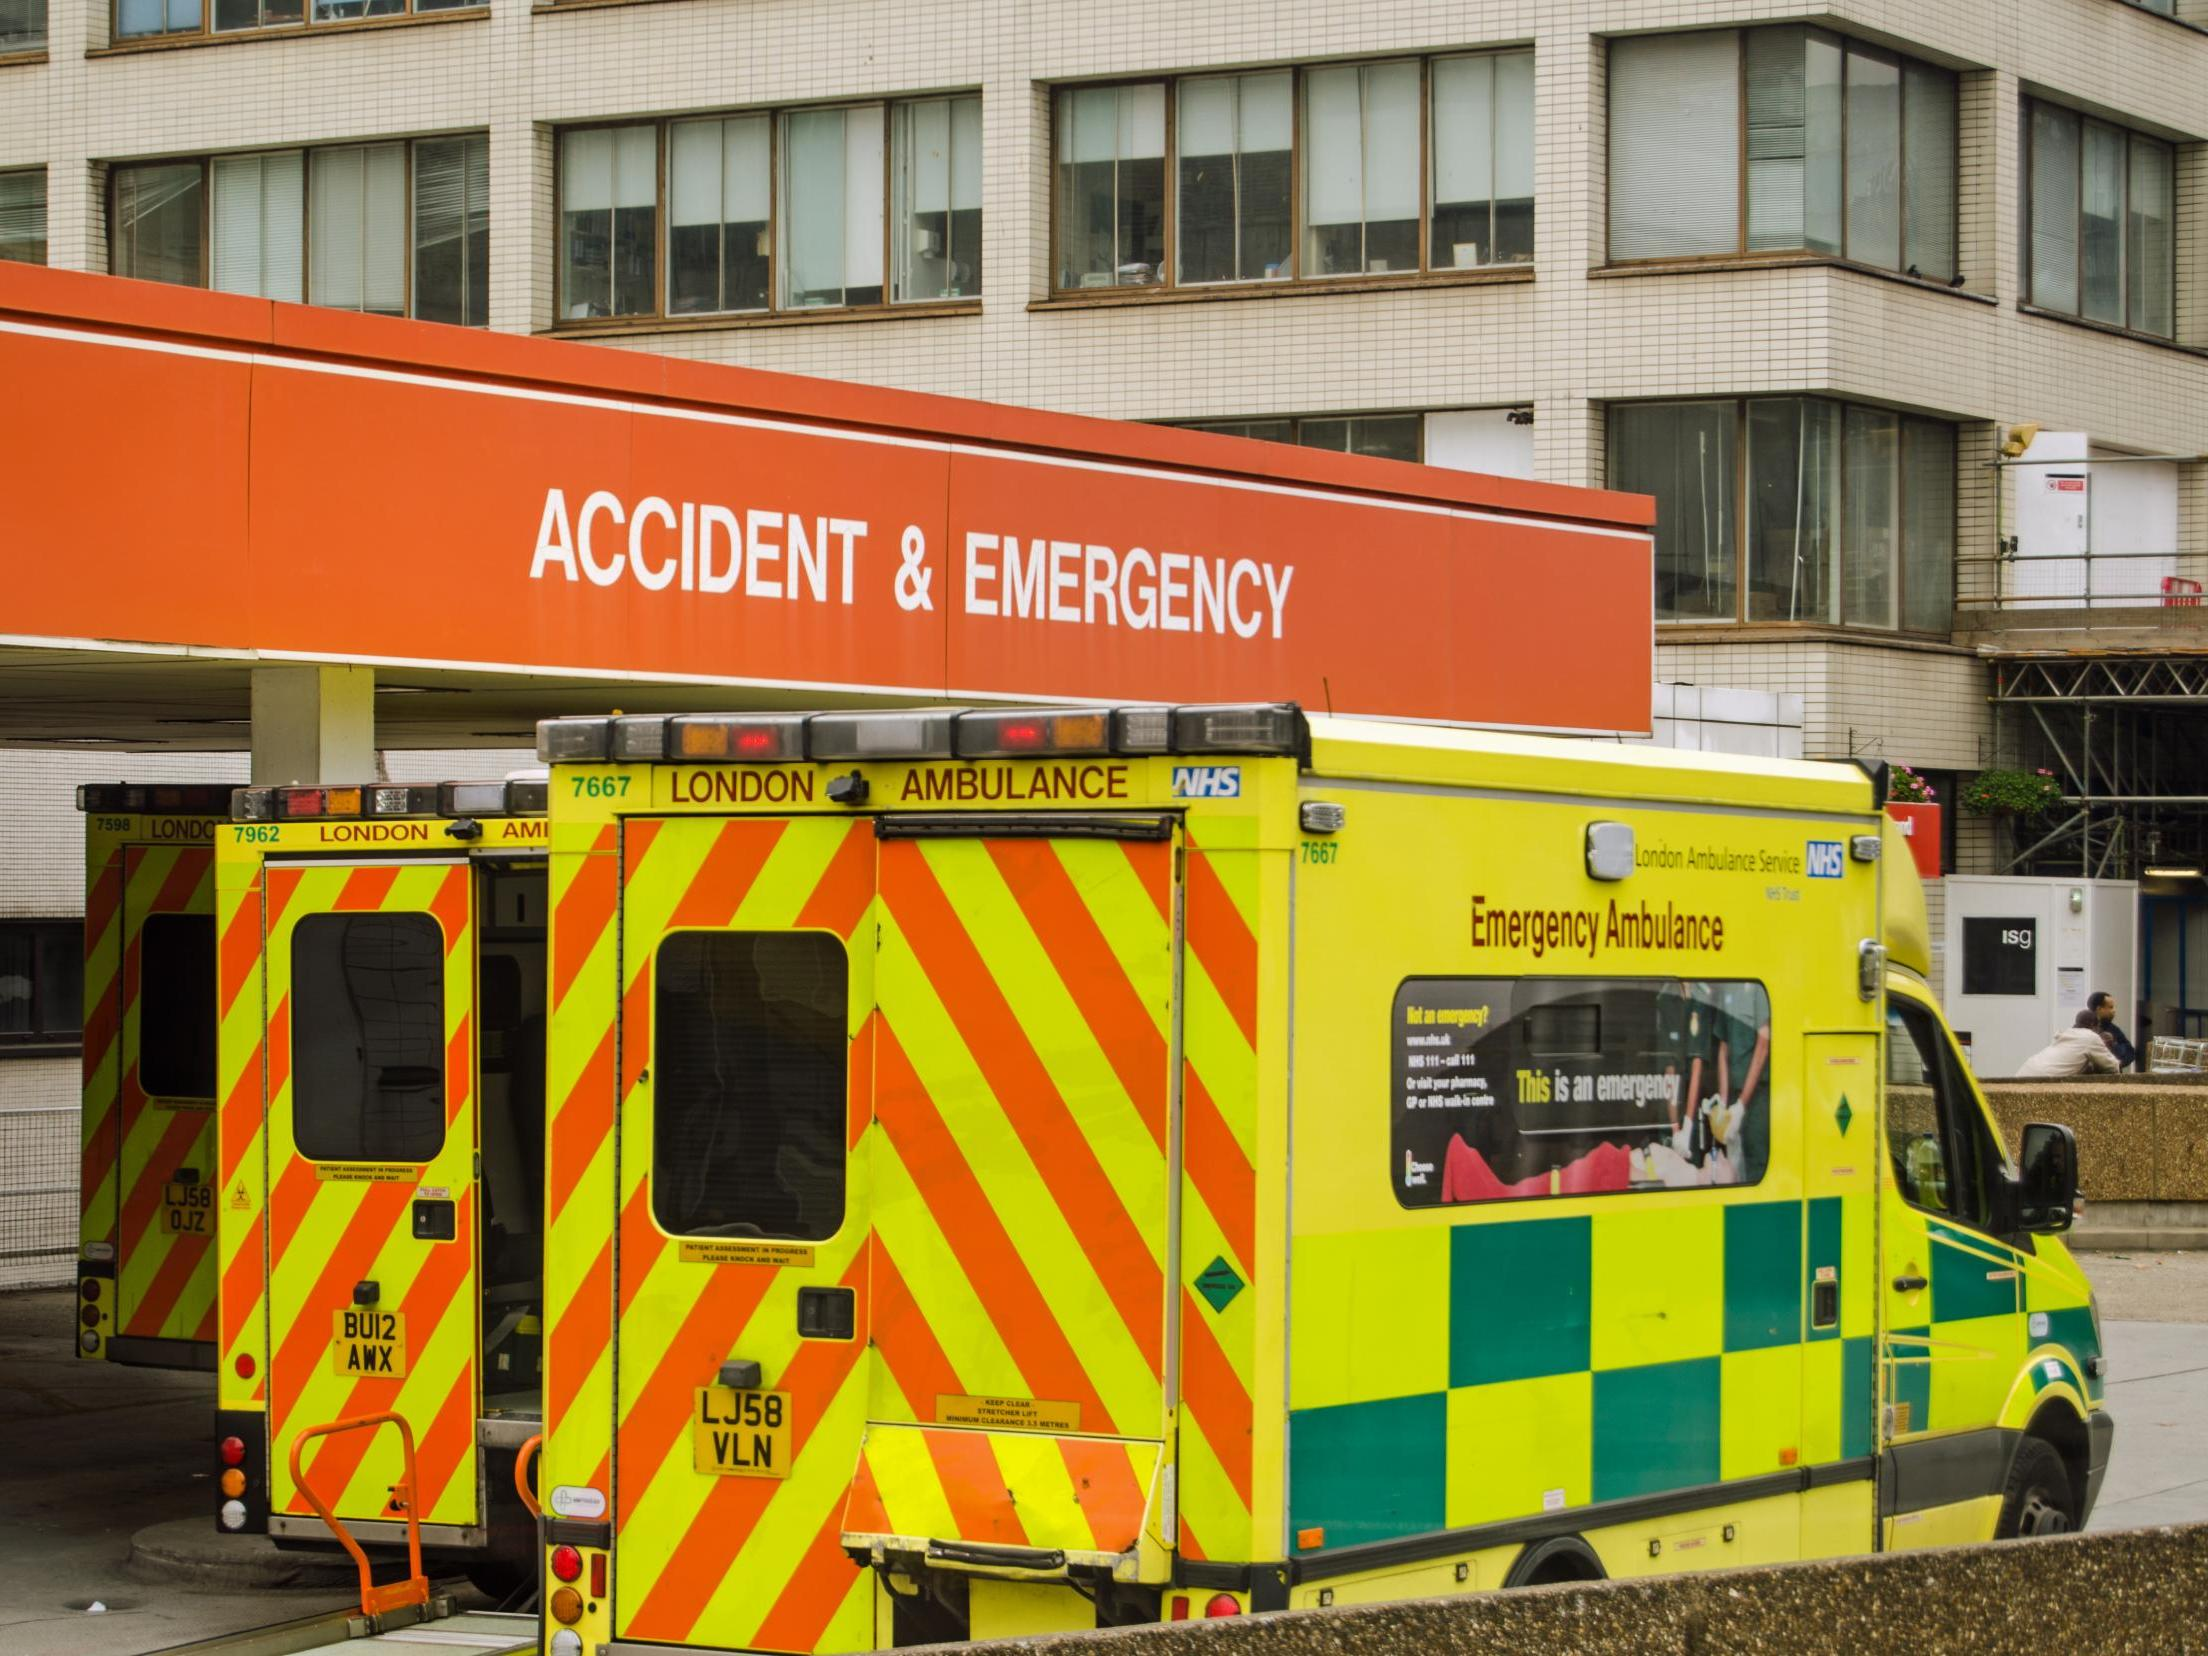 A&E trolley waits over 12 hours could be affecting tens of thousands more than official data suggests